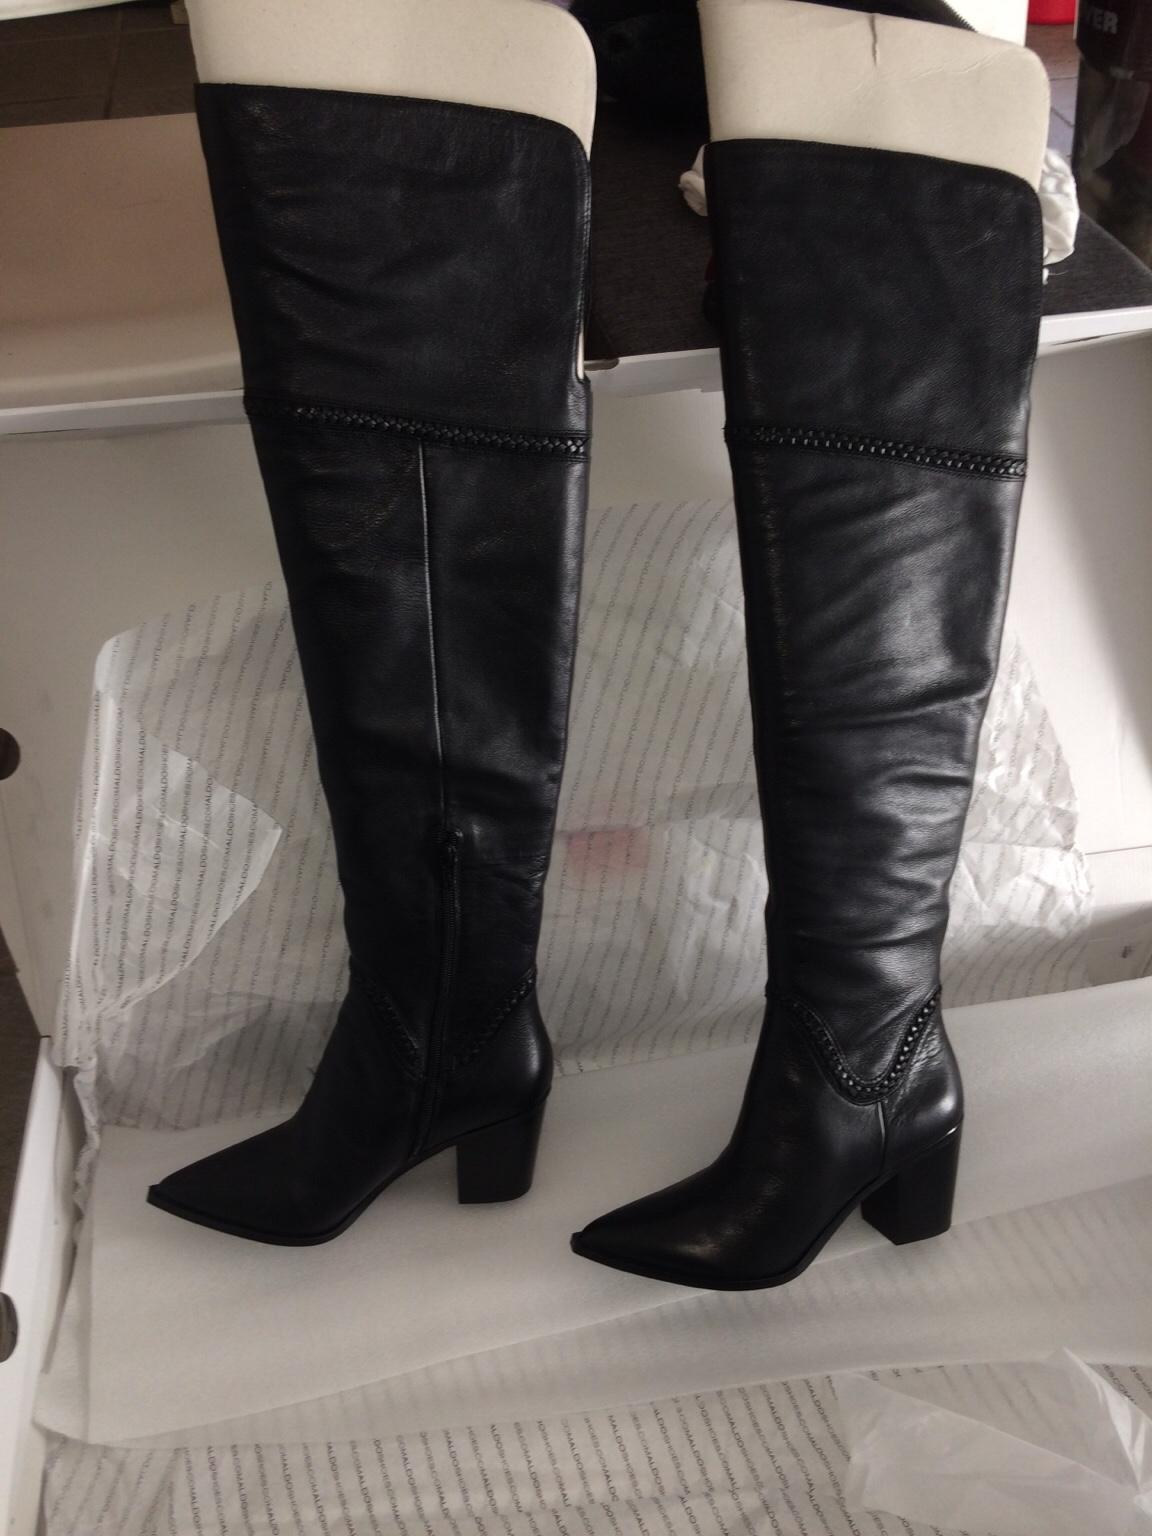 dbd0c3975e8 New ALDO Olena leather over the knee boots in EN2 Enfield for £50.00 for  sale - Shpock